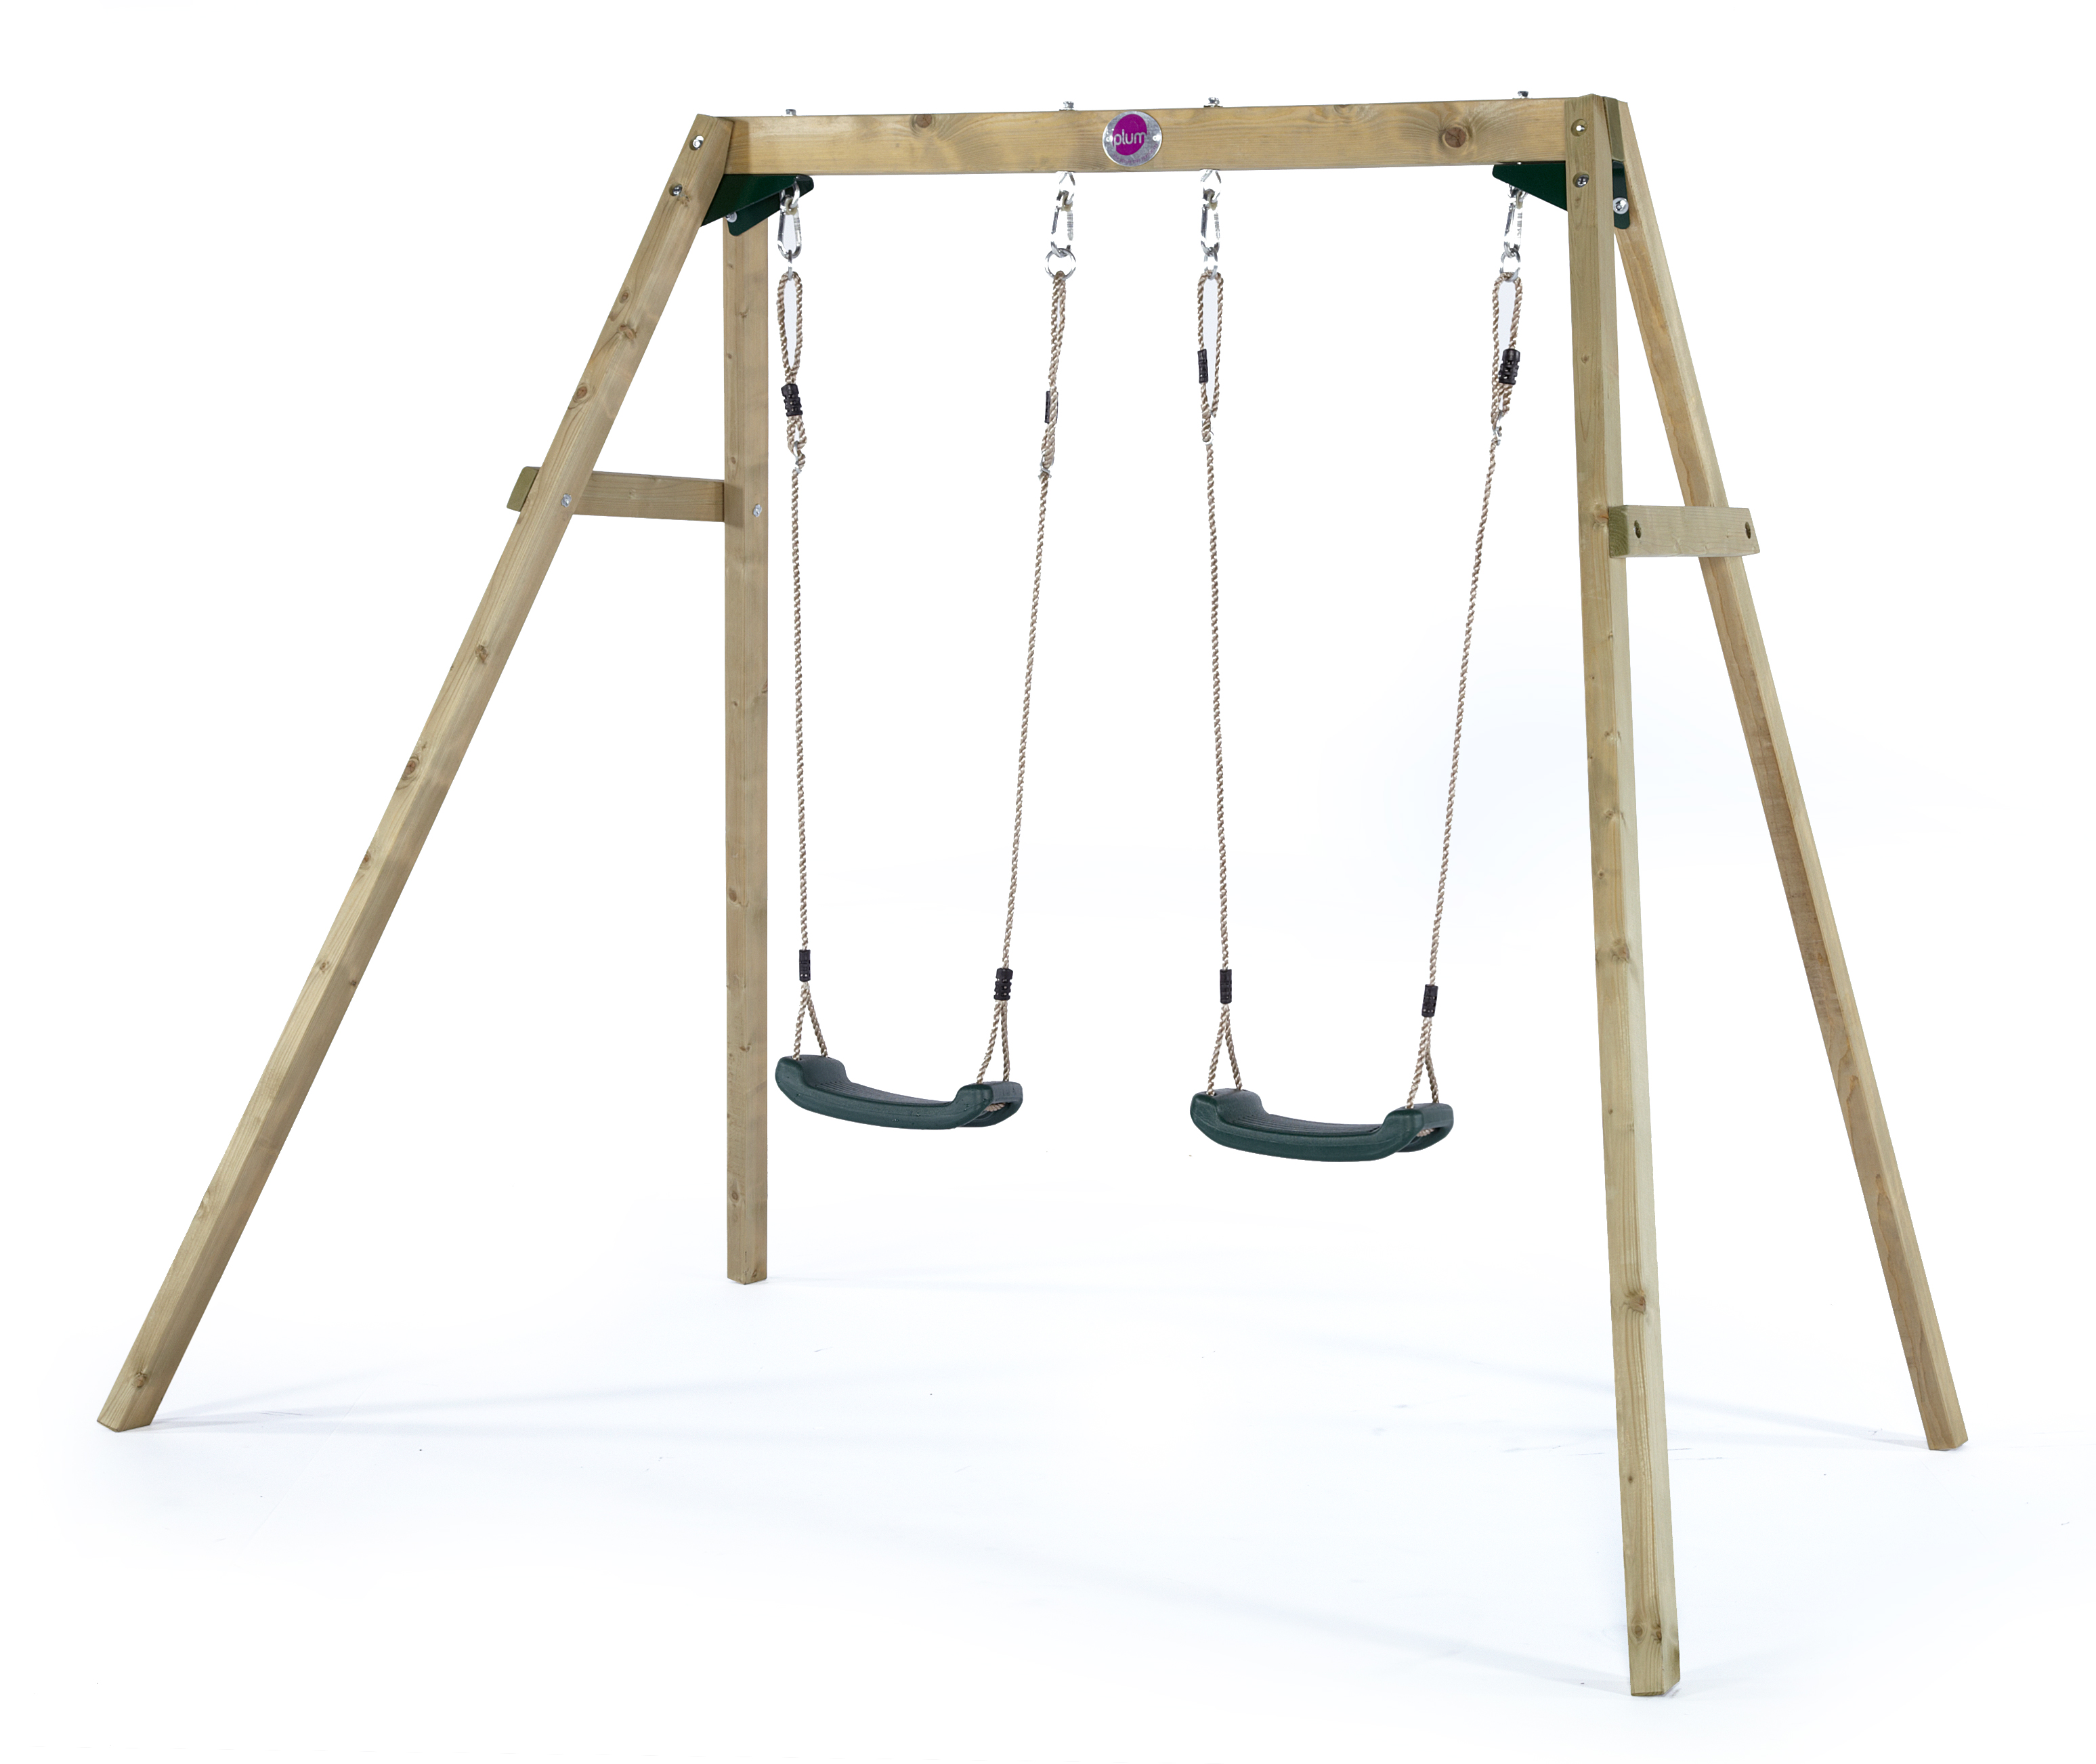 BFree wooden double swing set sttswings